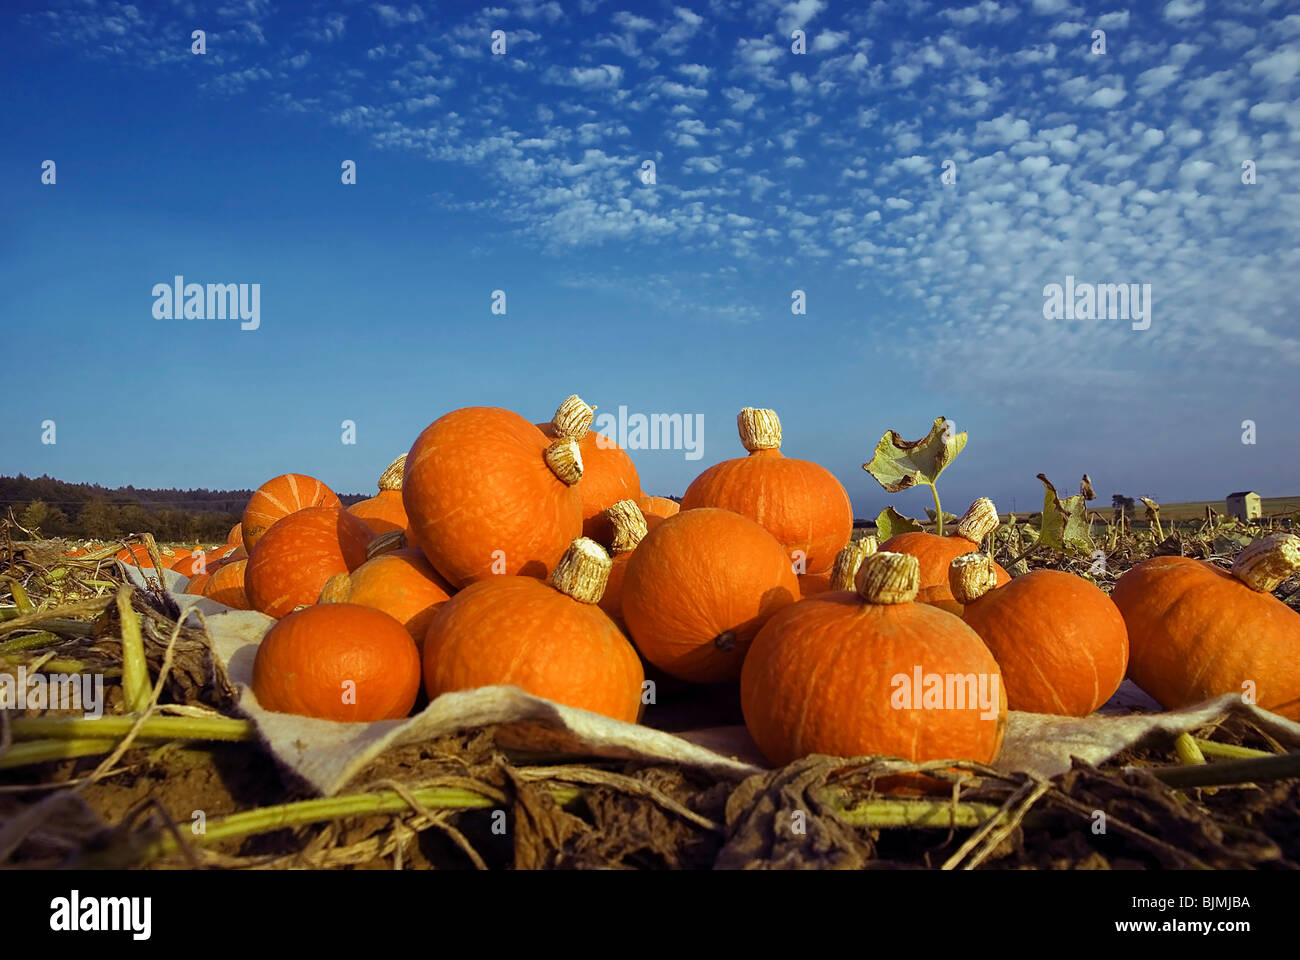 Harvested pumpkins in a pumpkin field with fluffy clouds - Stock Image